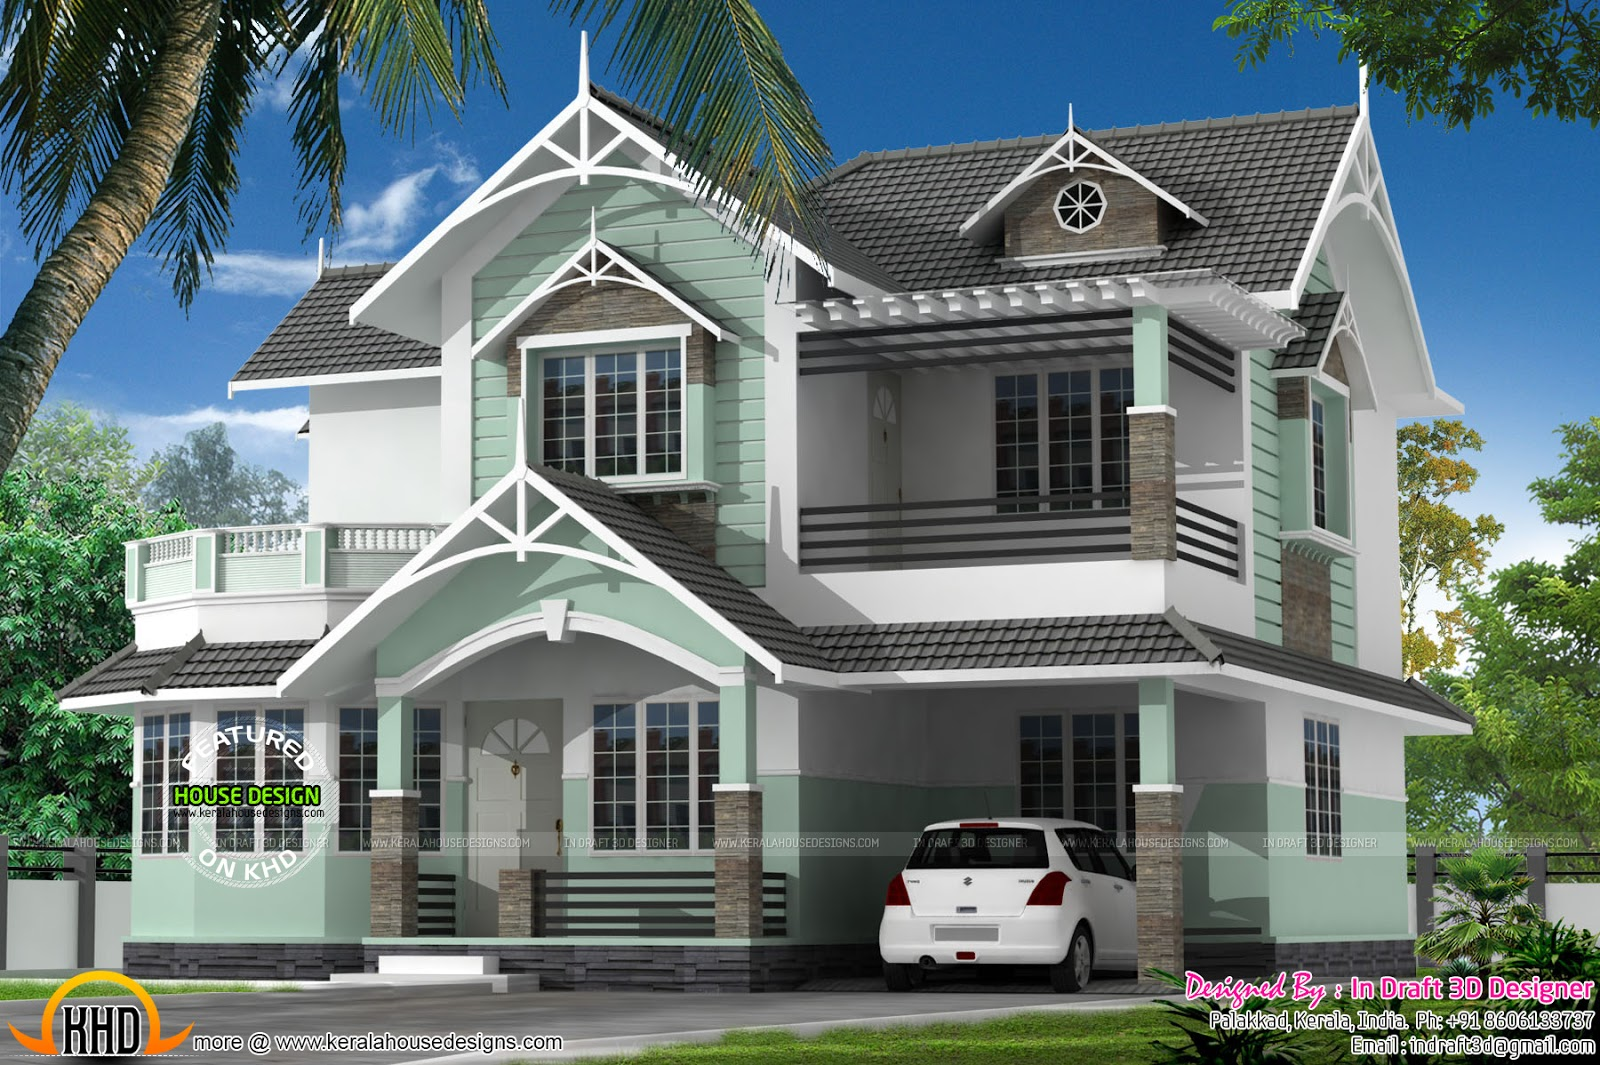 Classic Home Design Classic Home In 2025 Square Feet Kerala Home Design And